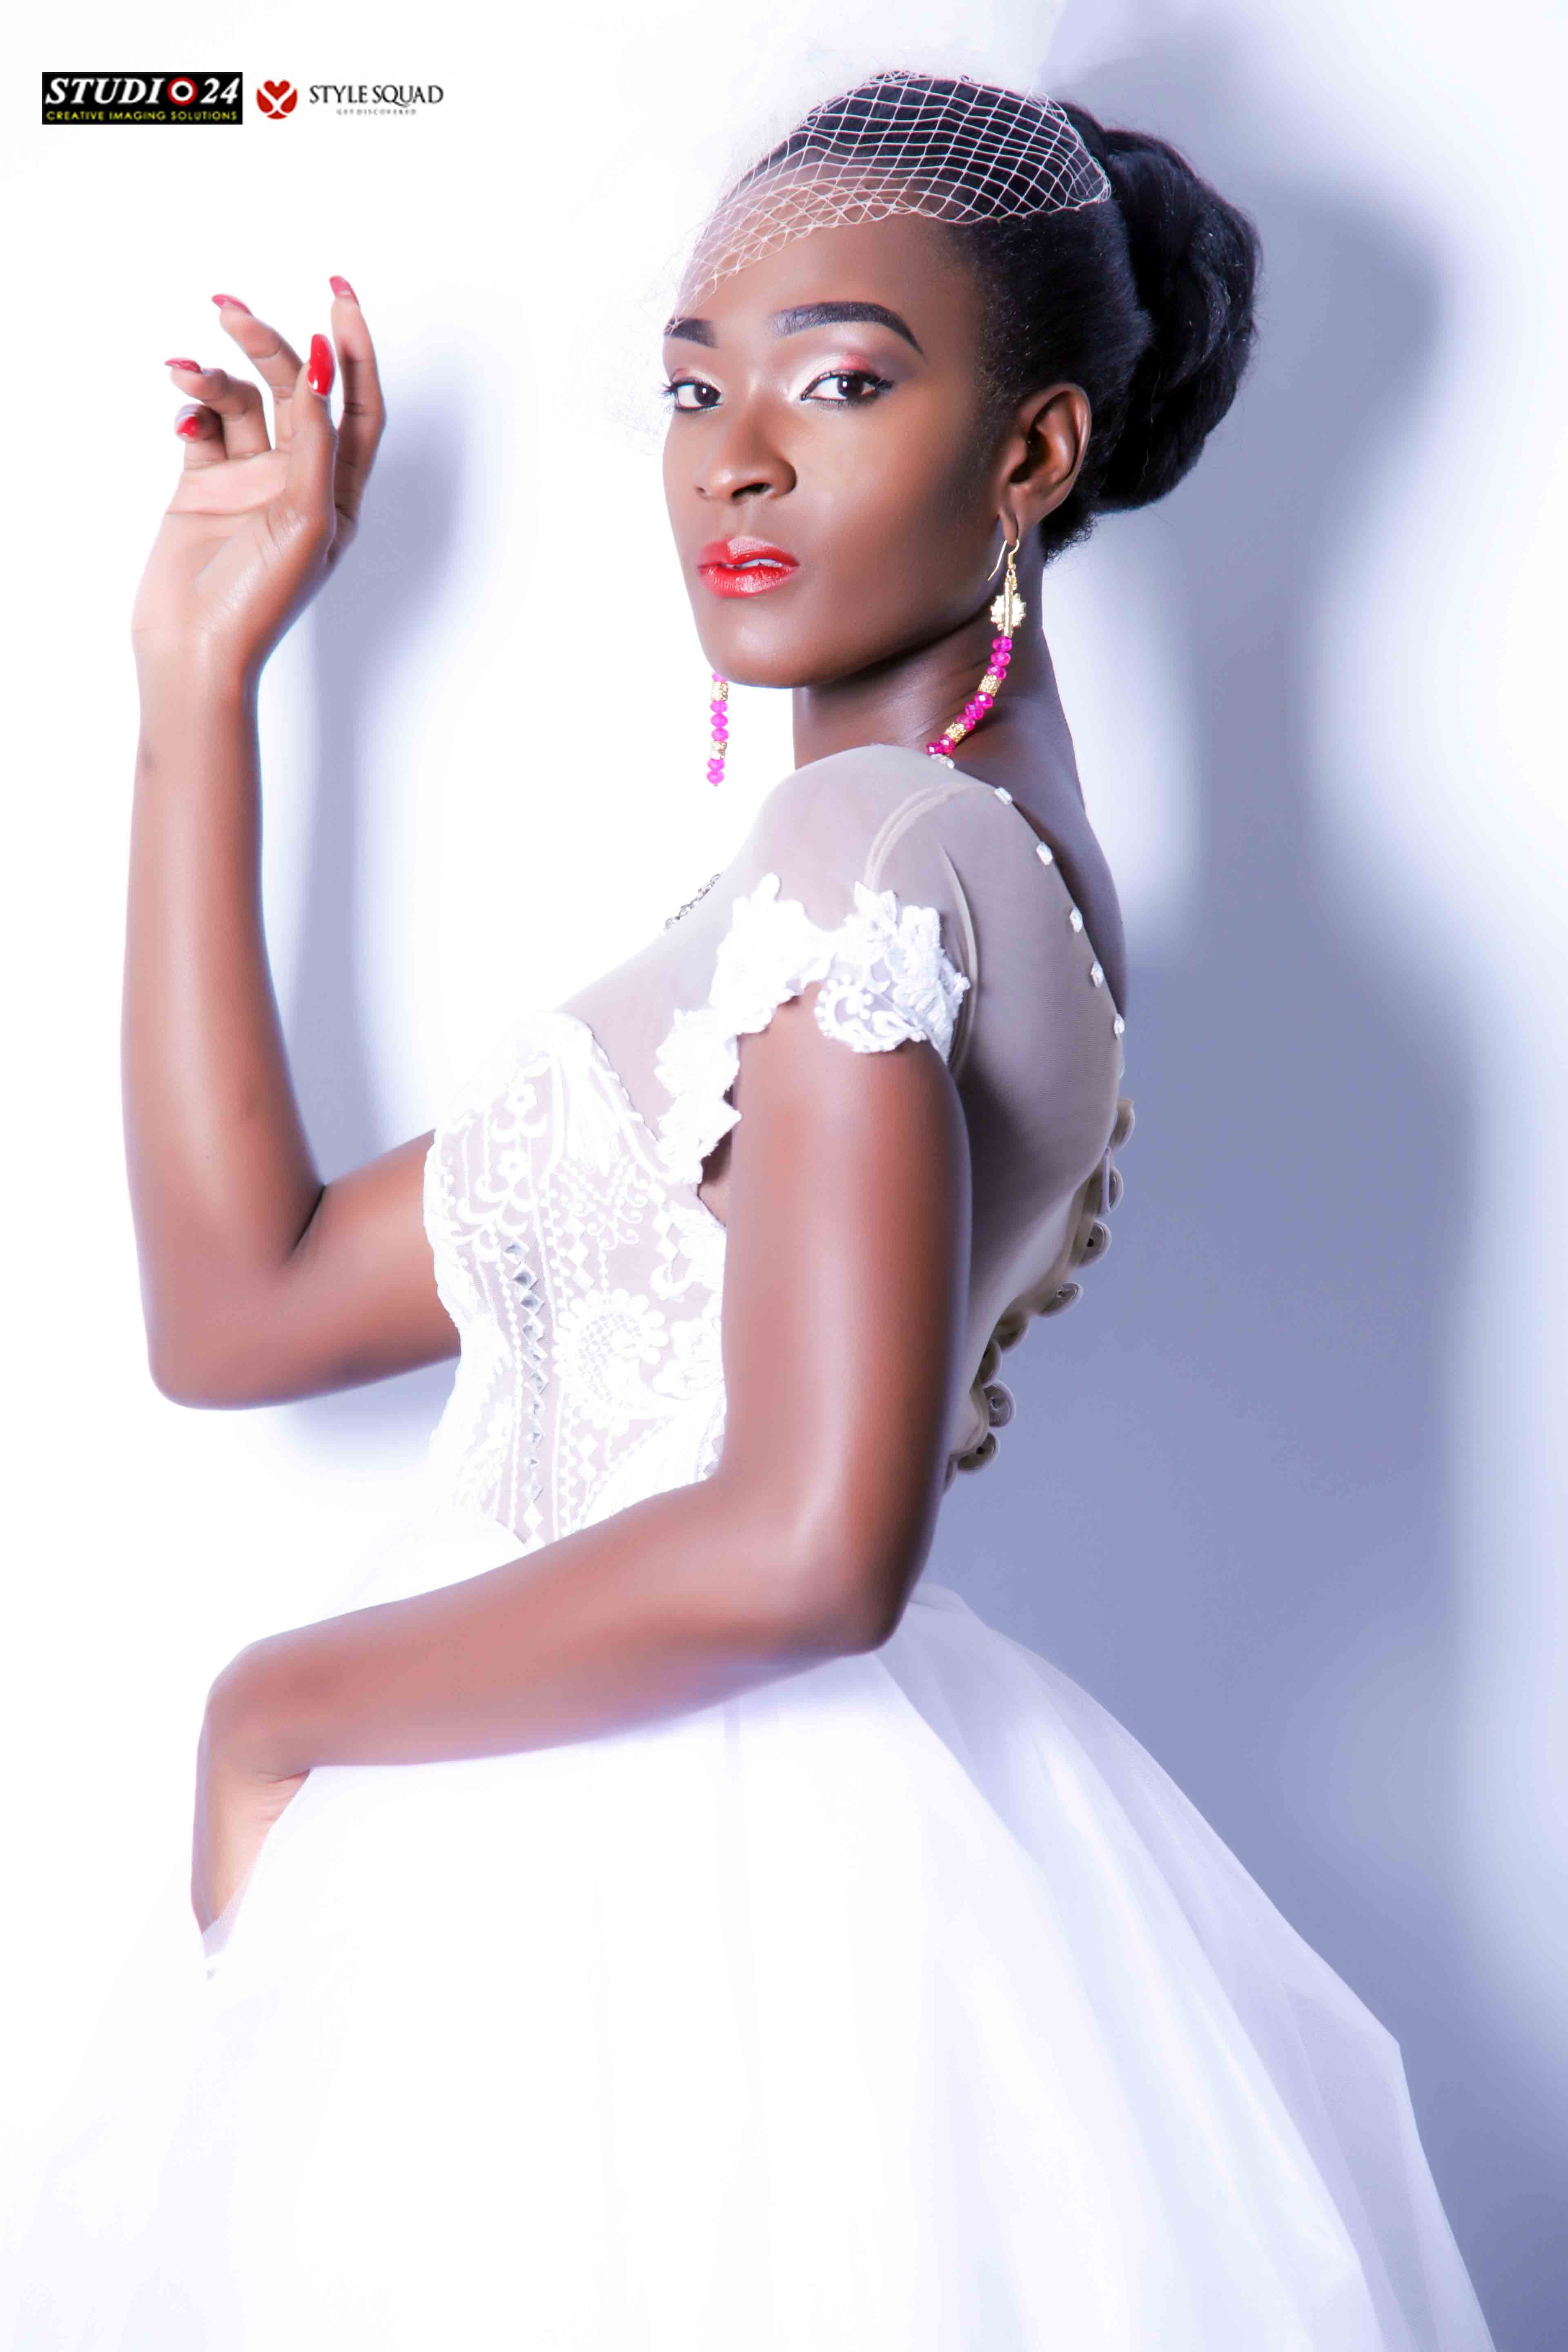 mode africaine-FRANCK gnamien-eve marie djibo-dnafrica-african fashion style